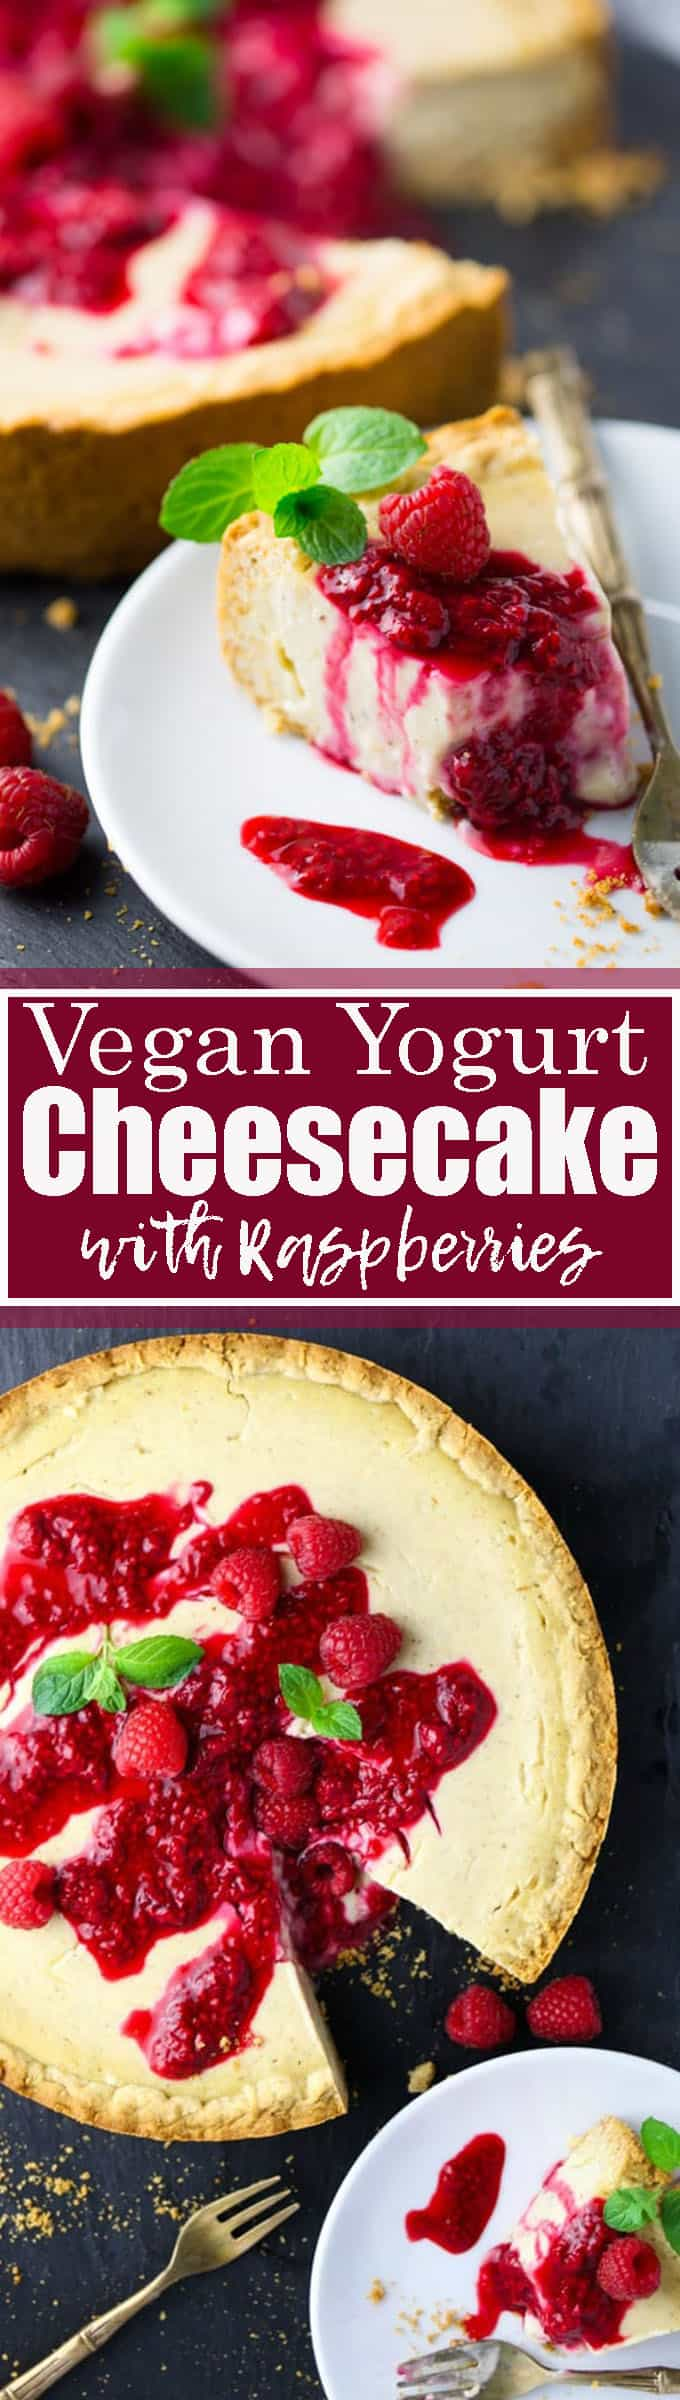 If you're looking for vegan cakes, you'll love this vegan cheesecake with raspberry sauce! Unlike many other vegan cheesecake recipes it's baked and not made with cashews. Find more vegan dessert recipes at veganheaven.org